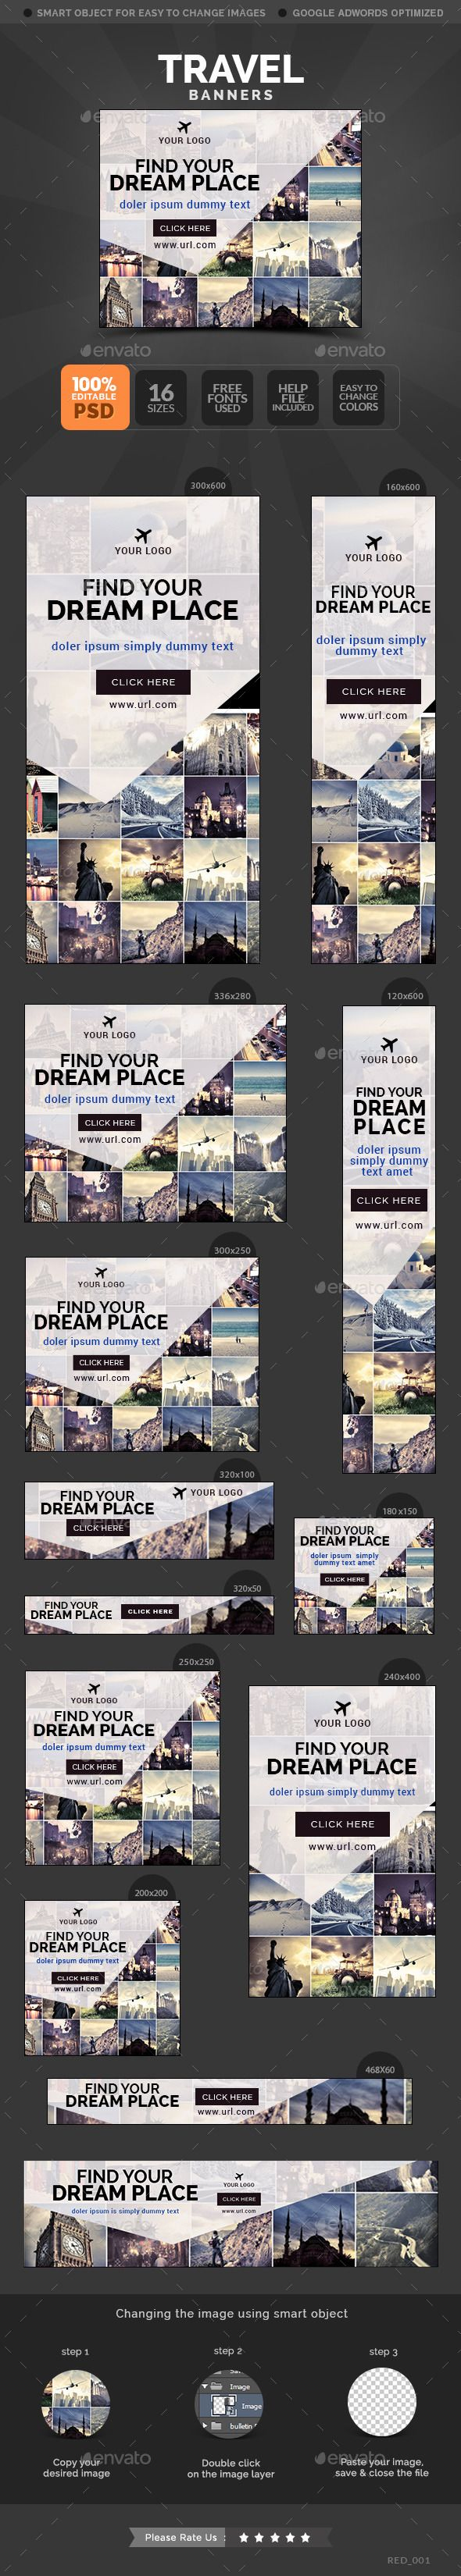 Travel banners Template PSD #banner #webbanner #design Download: http://graphicriver.net/item/travel-banners/10650142?ref=ksioks